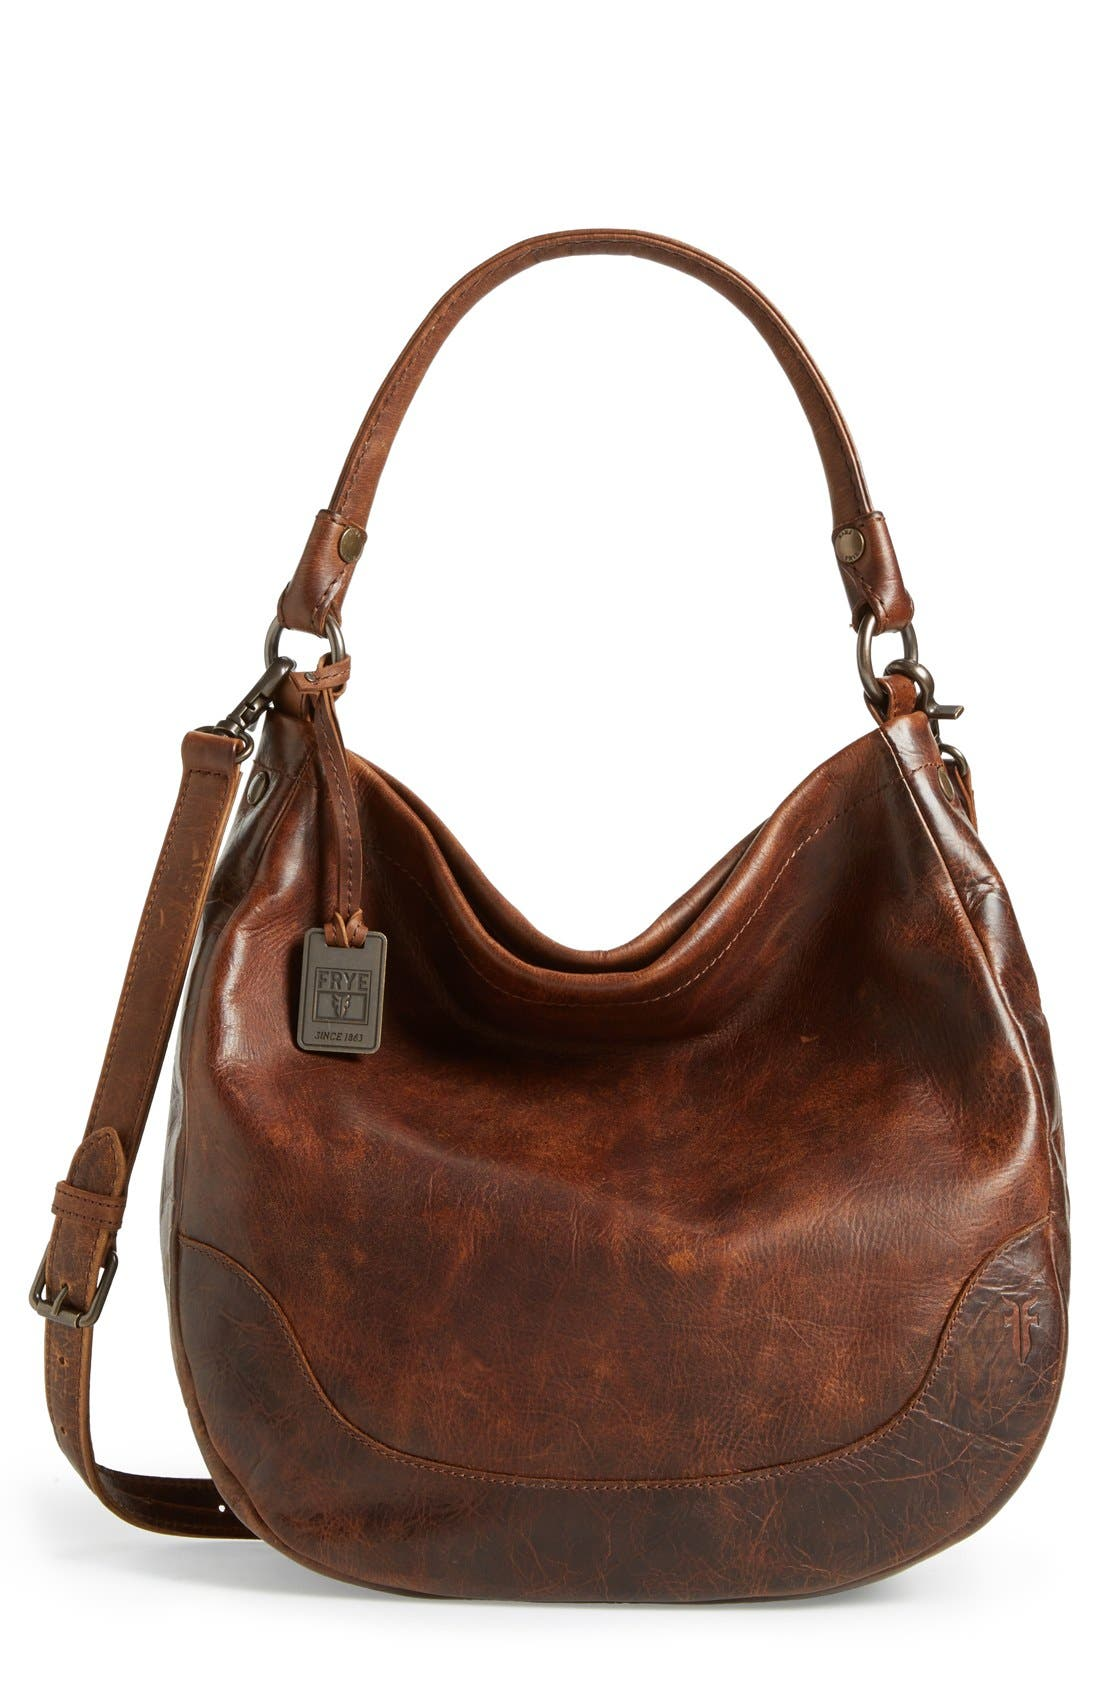 FRYE, Melissa Leather Hobo, Main thumbnail 1, color, DARK BROWN